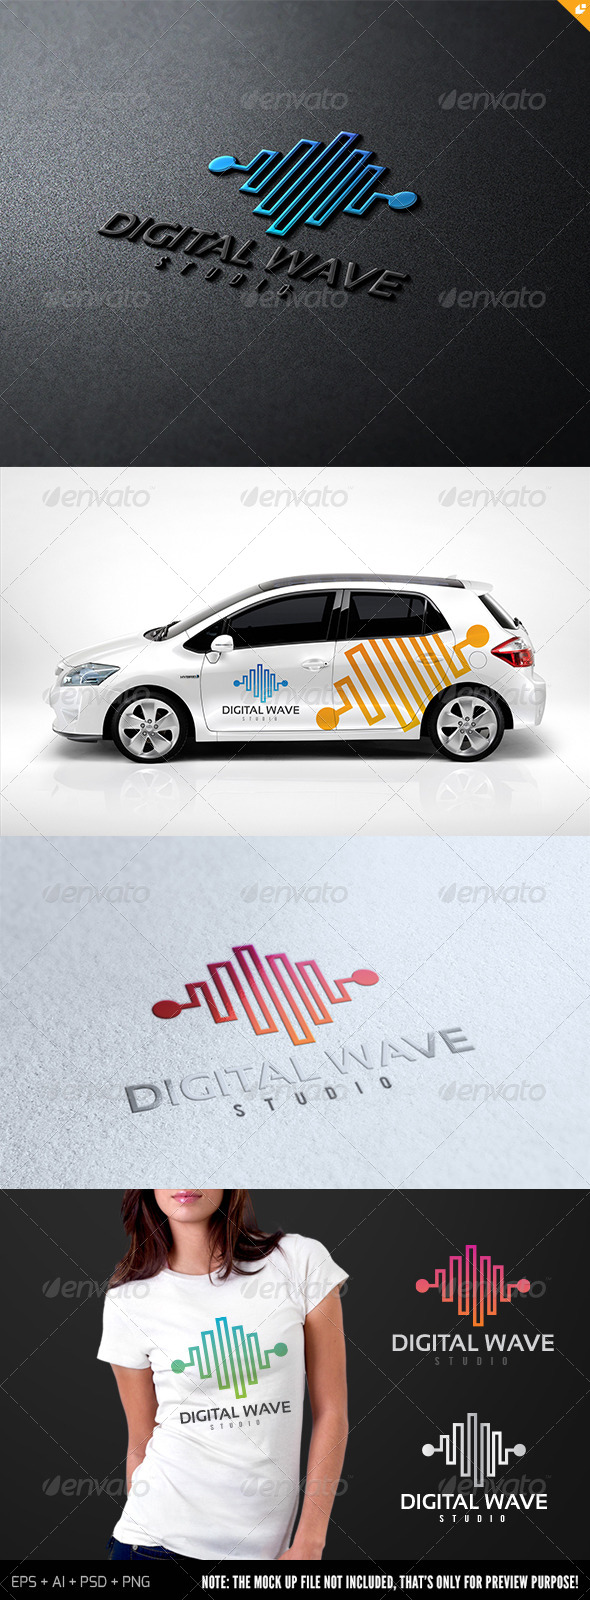 Digital Wave Studio Logo - Symbols Logo Templates